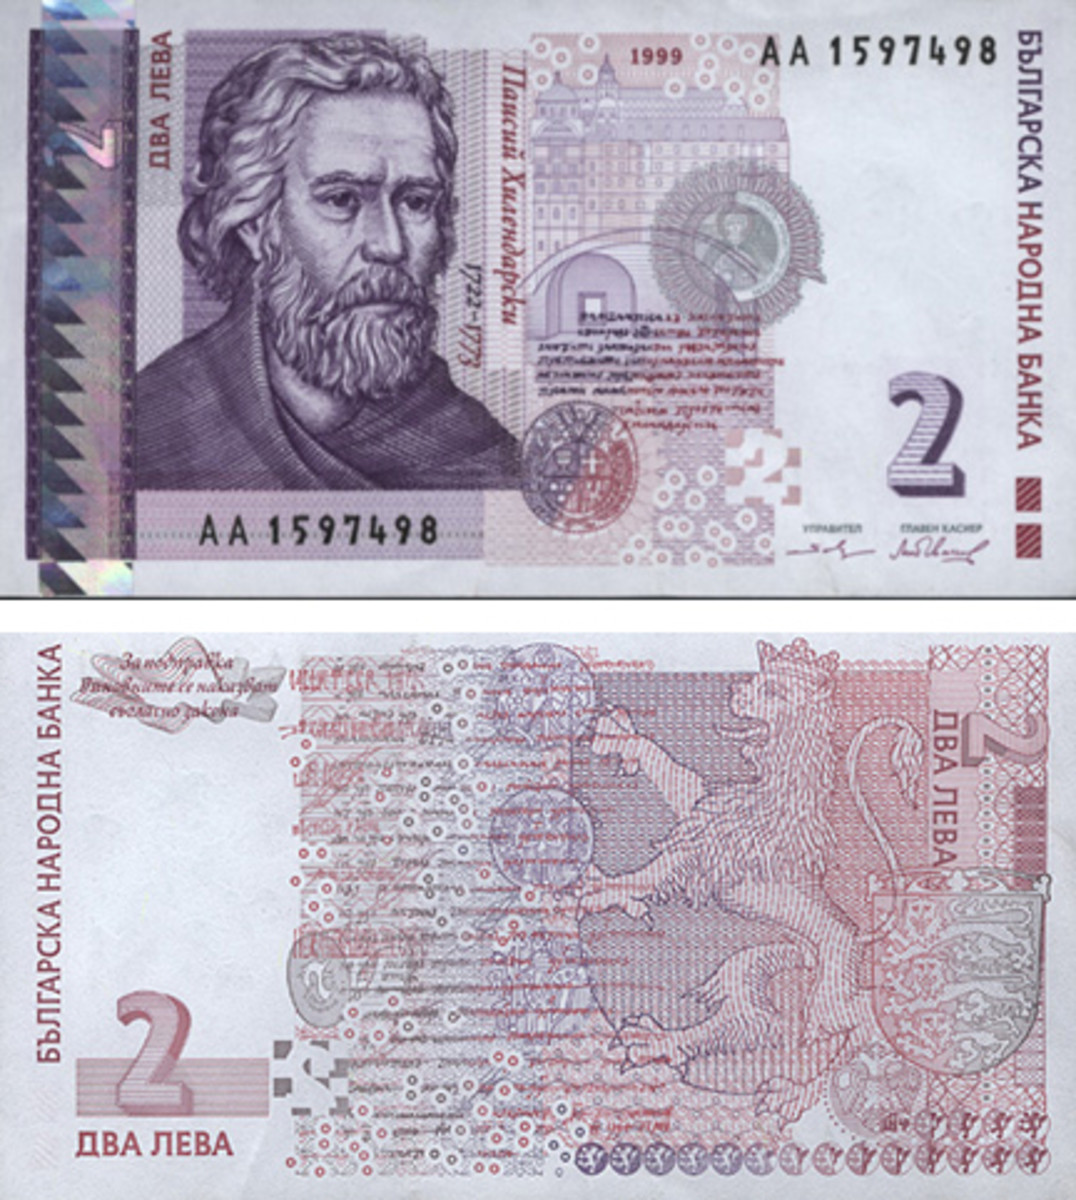 Bulgaria plans to issue a 2 lev coin to fulfill the role of the 2 lev bank note (pictured here).